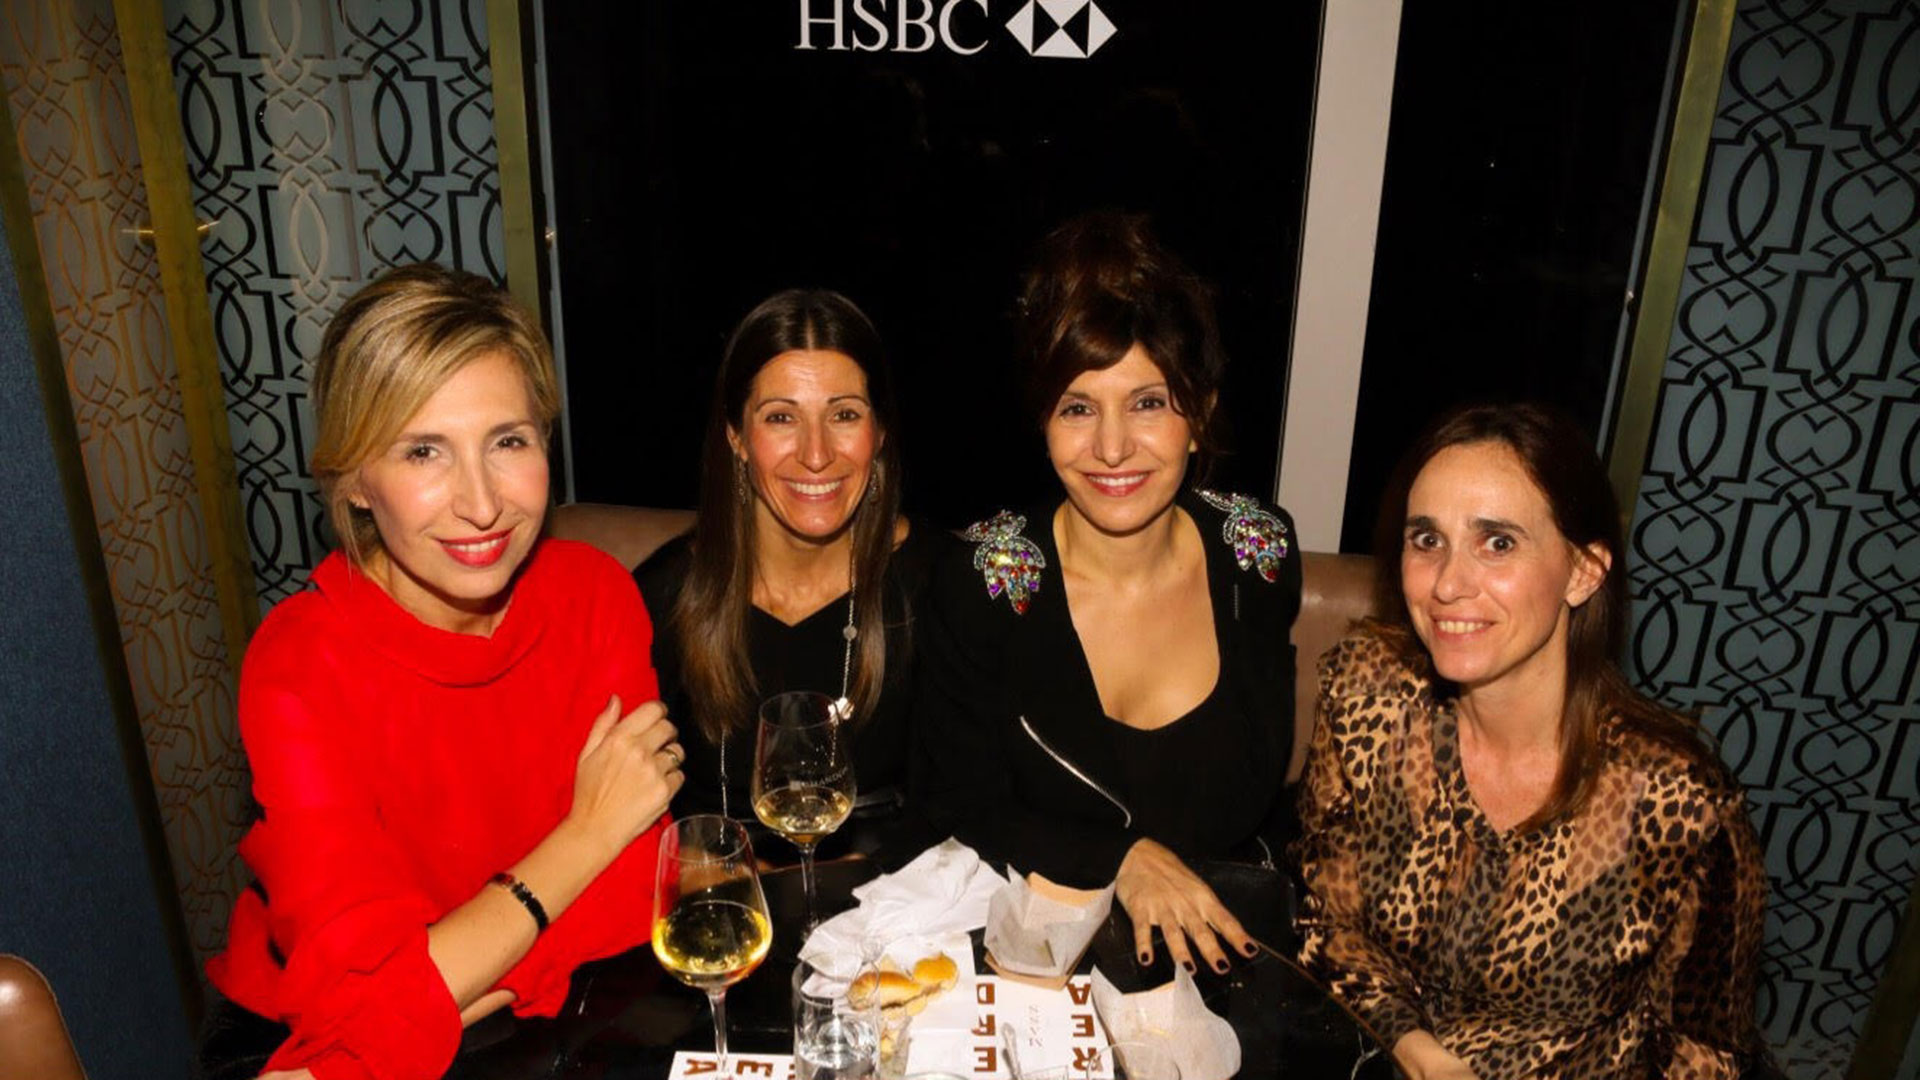 Flavia Fernández y Loreto Alcoba junto a Marcela Peduto, Manager Segmento Premier de HSBC, y Julia Lois, Marketing Head Retail Banking & Management de HSBC